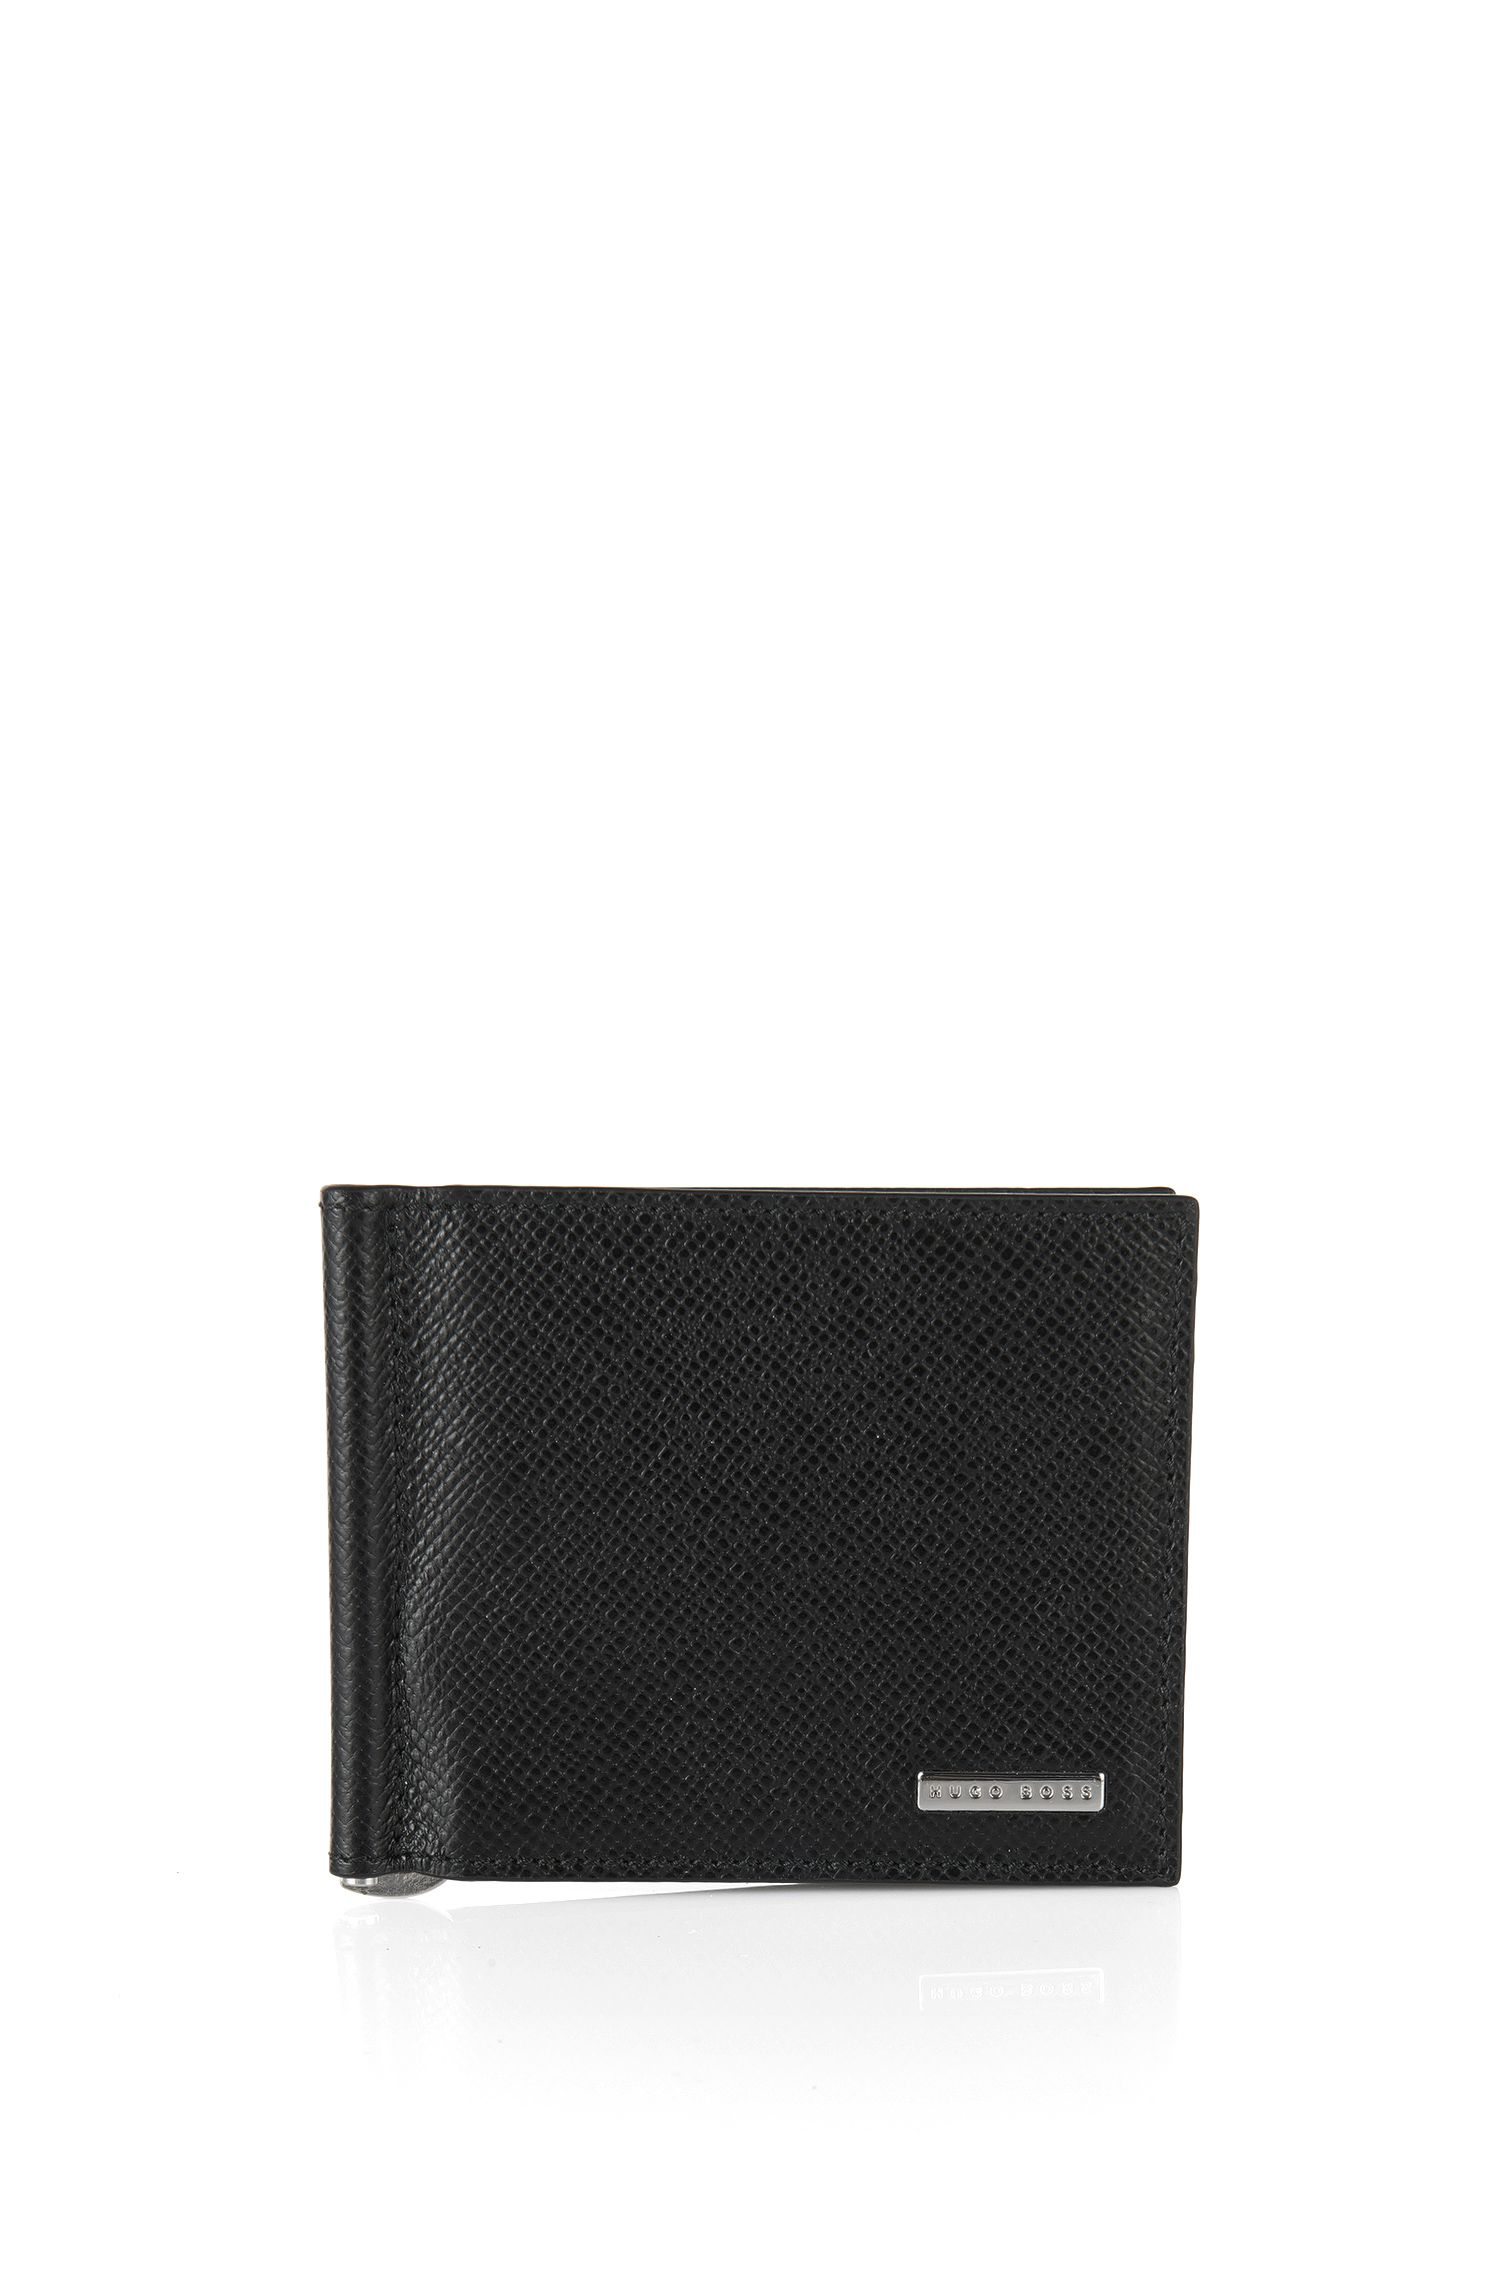 'Signature Clip' | Calfskin Printed Card Case, Money Clip